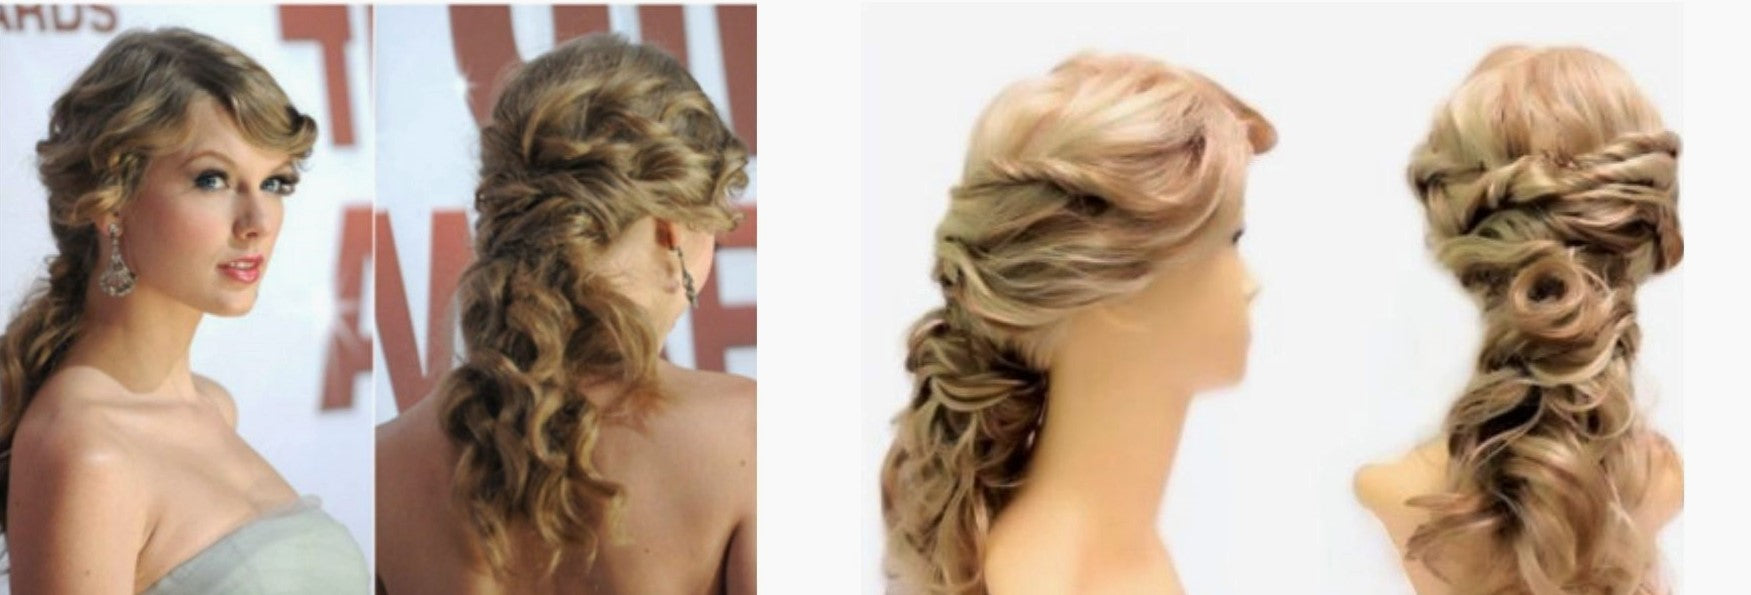 before after wig styling for taylor swift